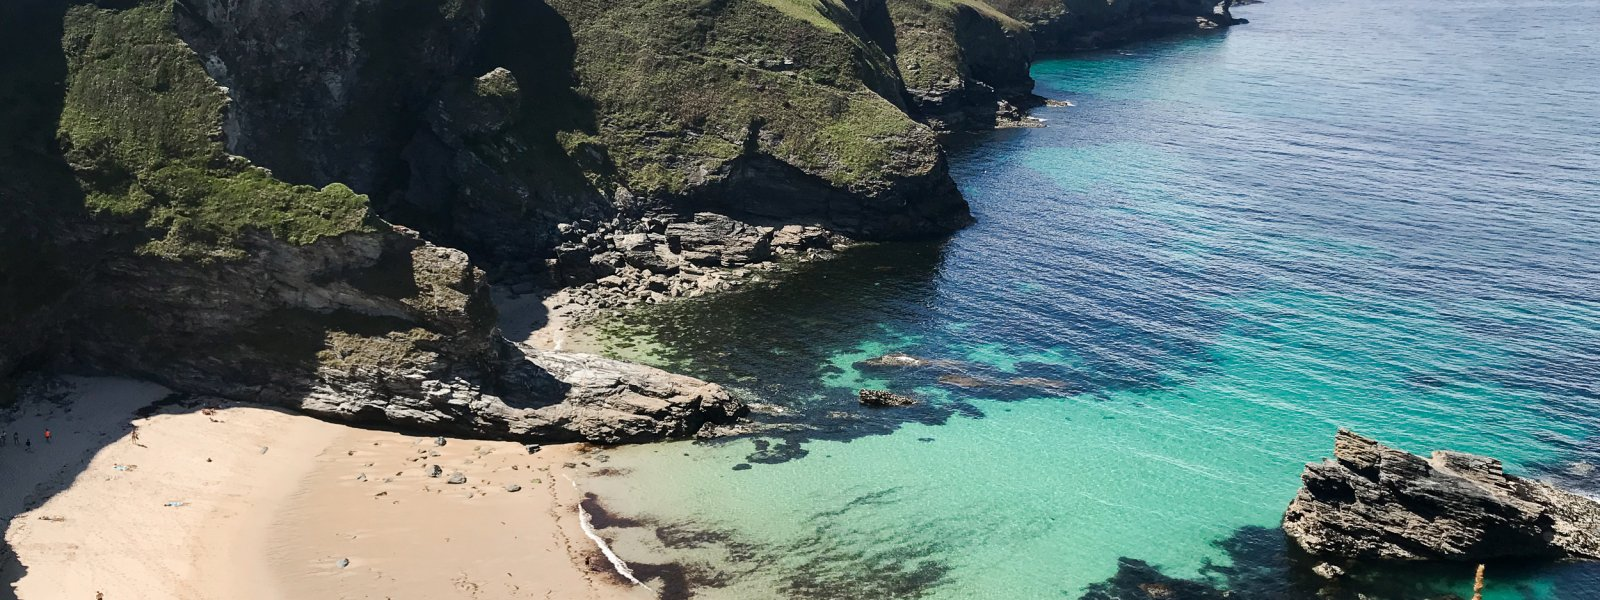 Finding Secret Beaches & Coves in Cornwall